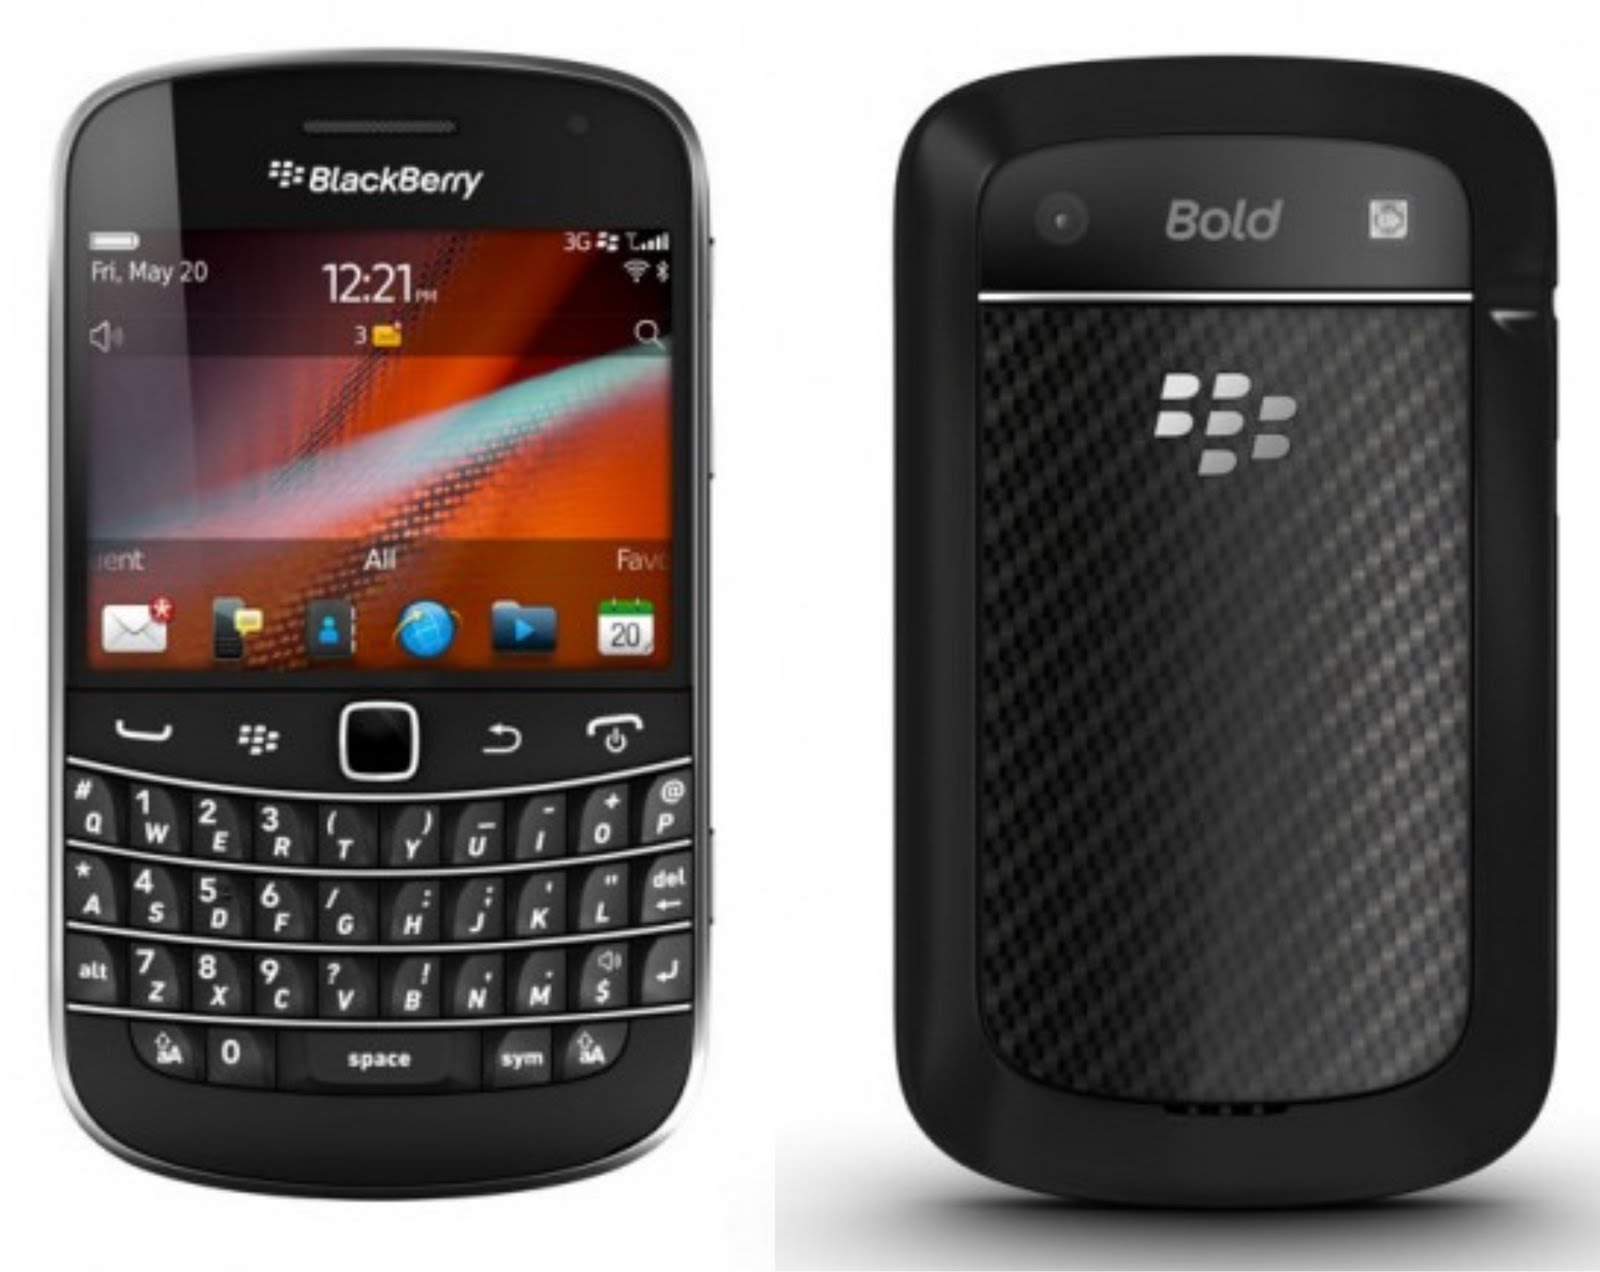 blackberry bold wallpaper - photo #5